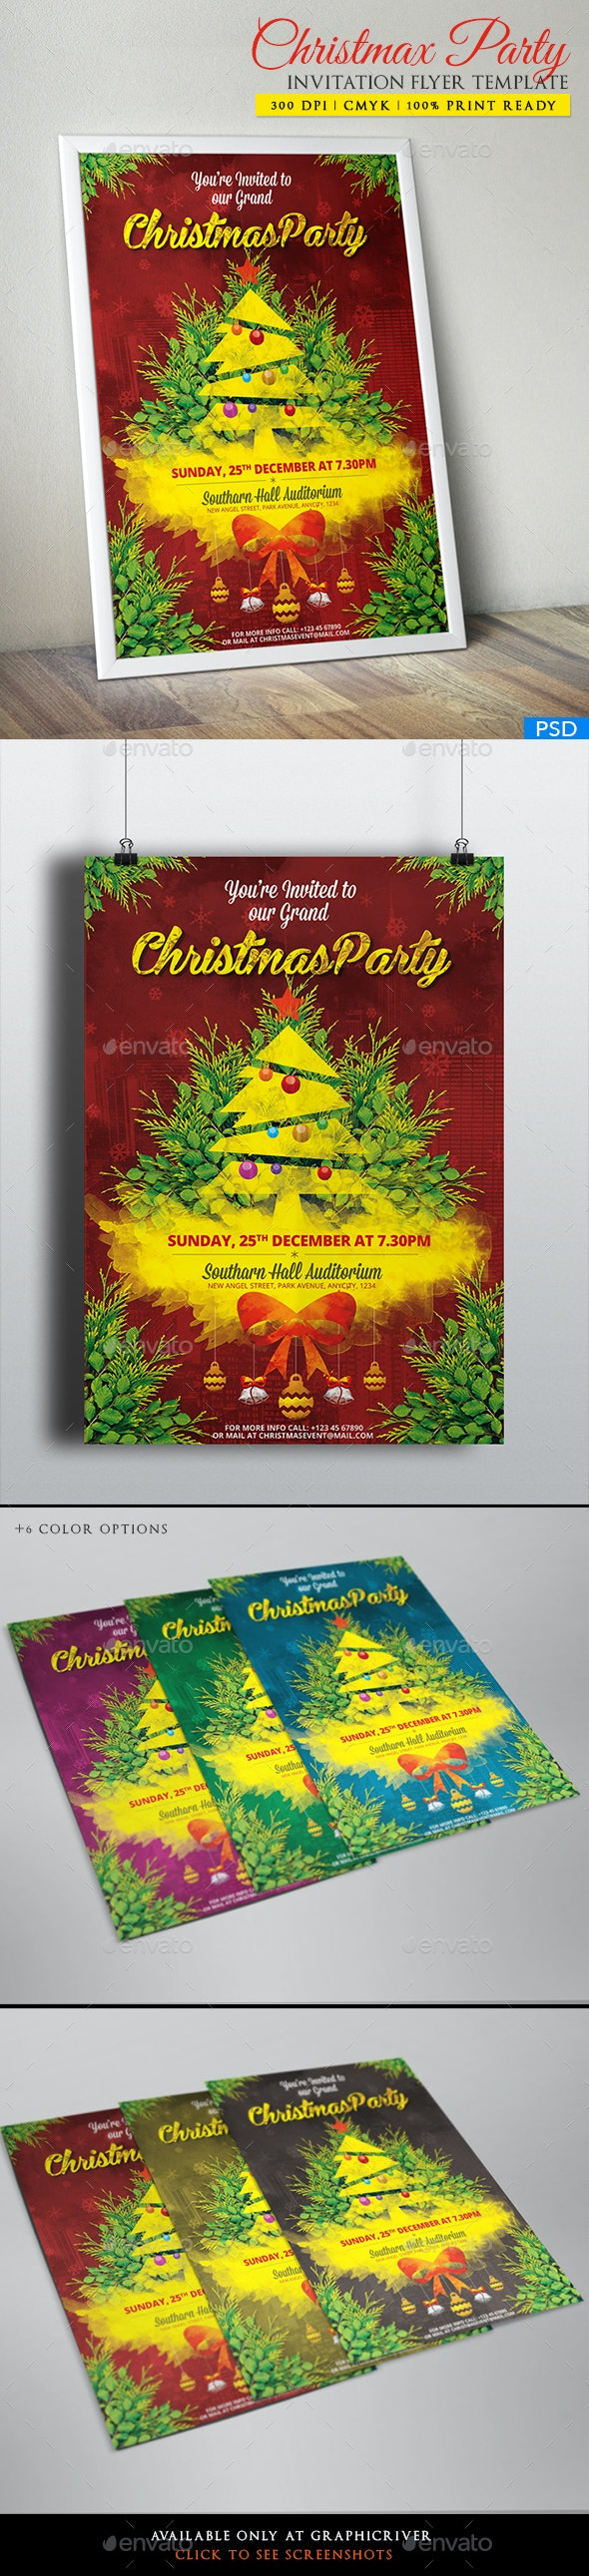 Christmas Party Invitation Flyer/Poster | PSD Flyer Template - Holidays Events